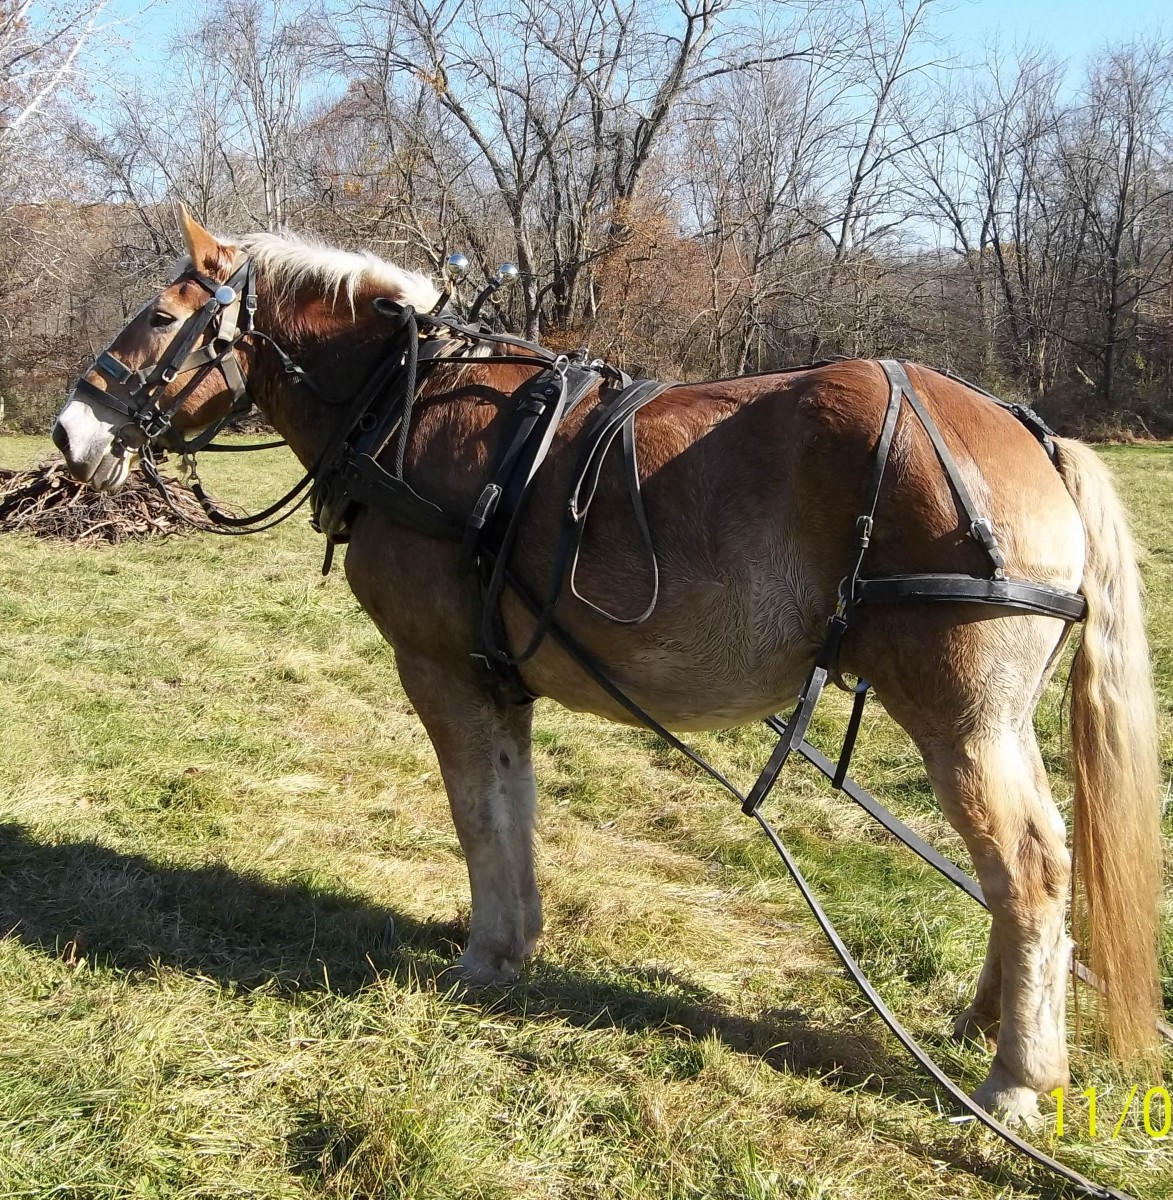 Working with Draft Horses on a Small, Sustainable Farm